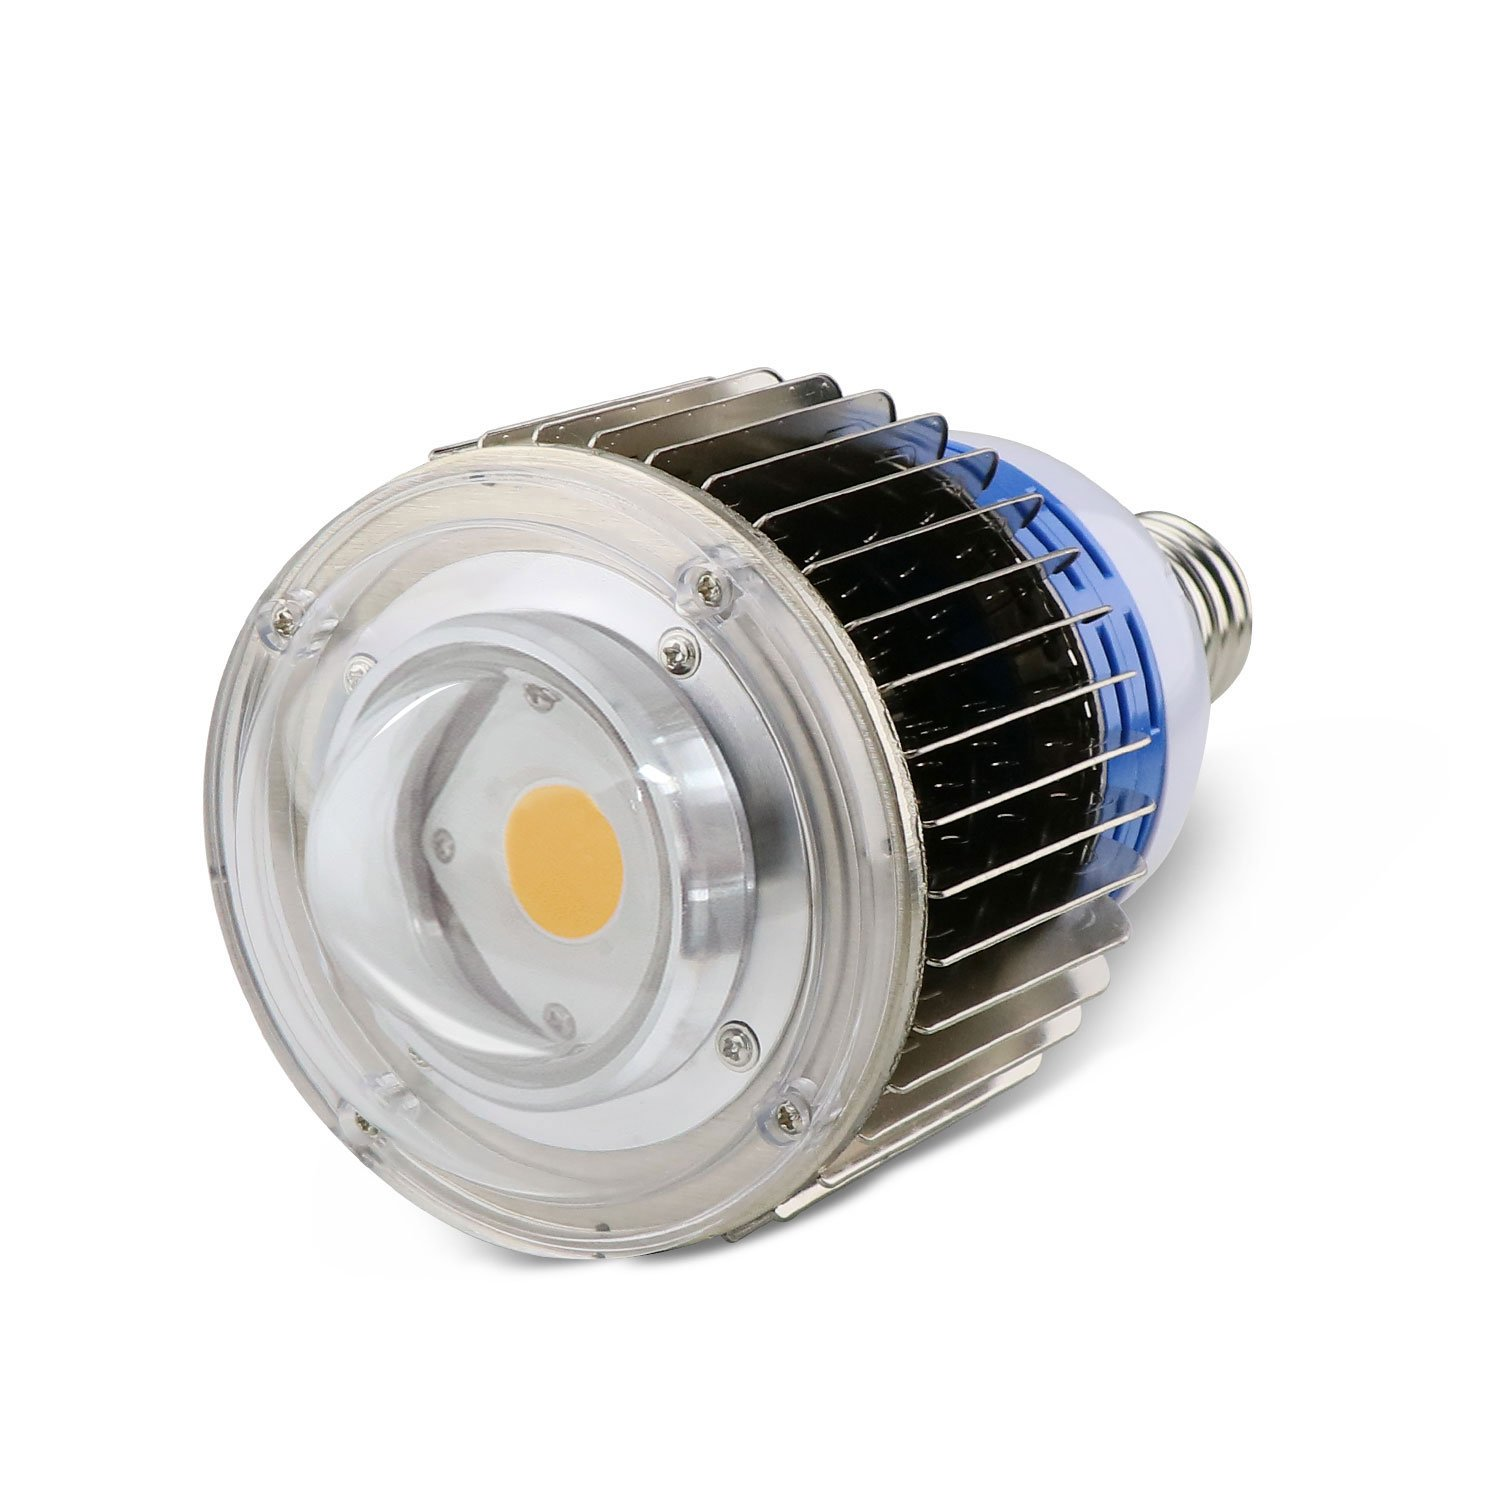 100W COB LED Grow Light Bulb,Citizen CLU48-1212 Led Plant Bulb Full Spectrum Grow Lights for Hydroponics Indoor Plants with Veg and Bloom,E27 Base with CITILED 3500K by YXO YUXINOU